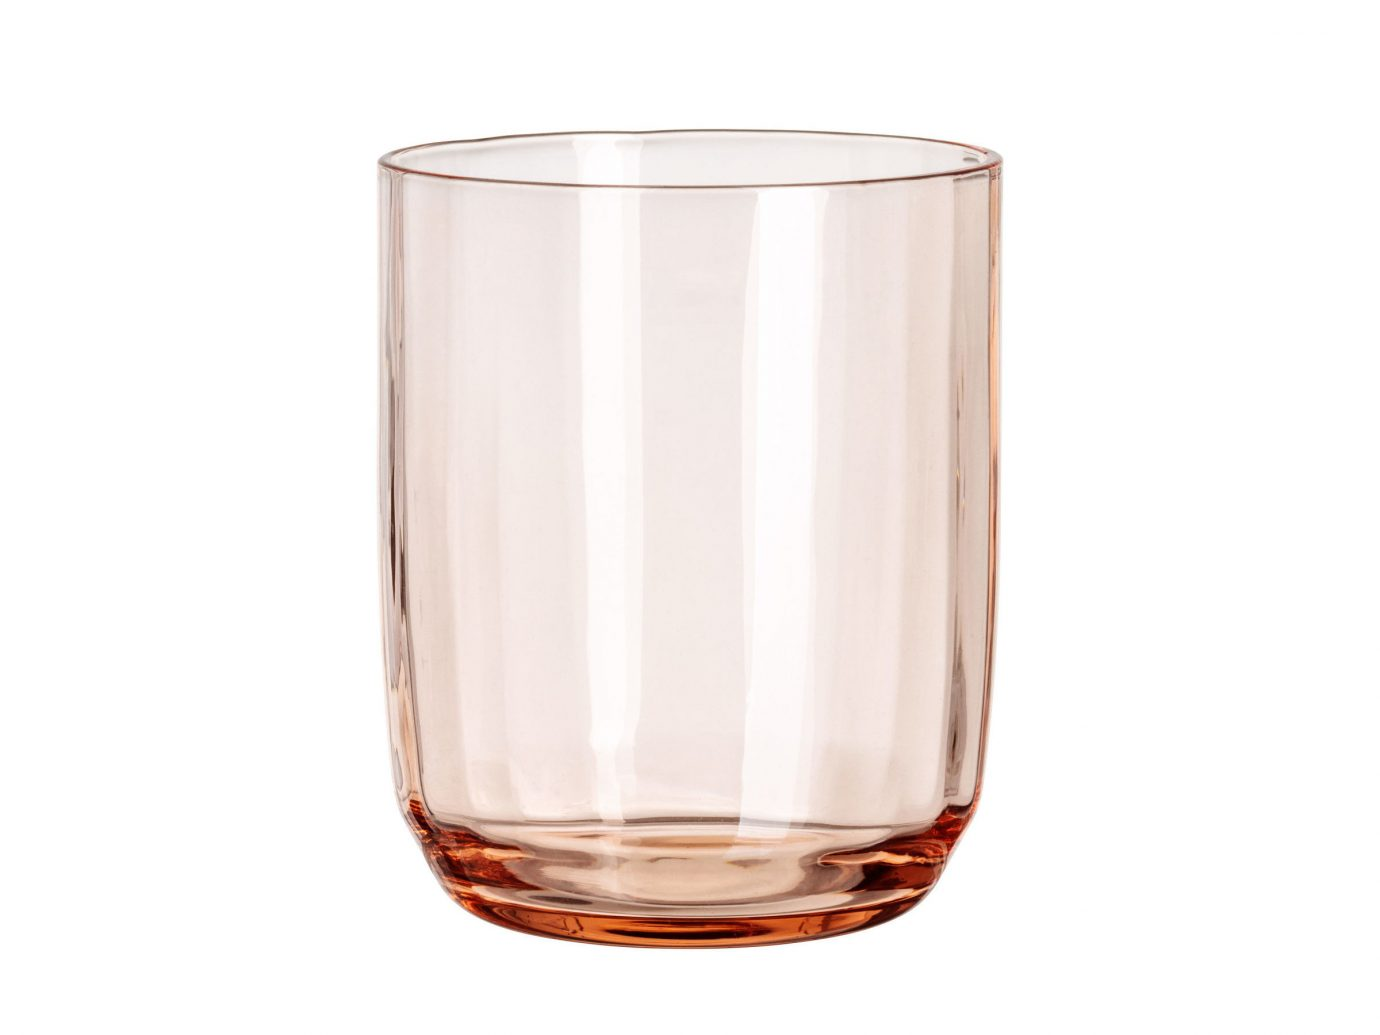 Style + Design Travel Shop cup container glass table highball glass indoor gauge device old fashioned glass beer glass pint glass drinkware barware tumbler ice tableware Drink plastic clear empty pitcher